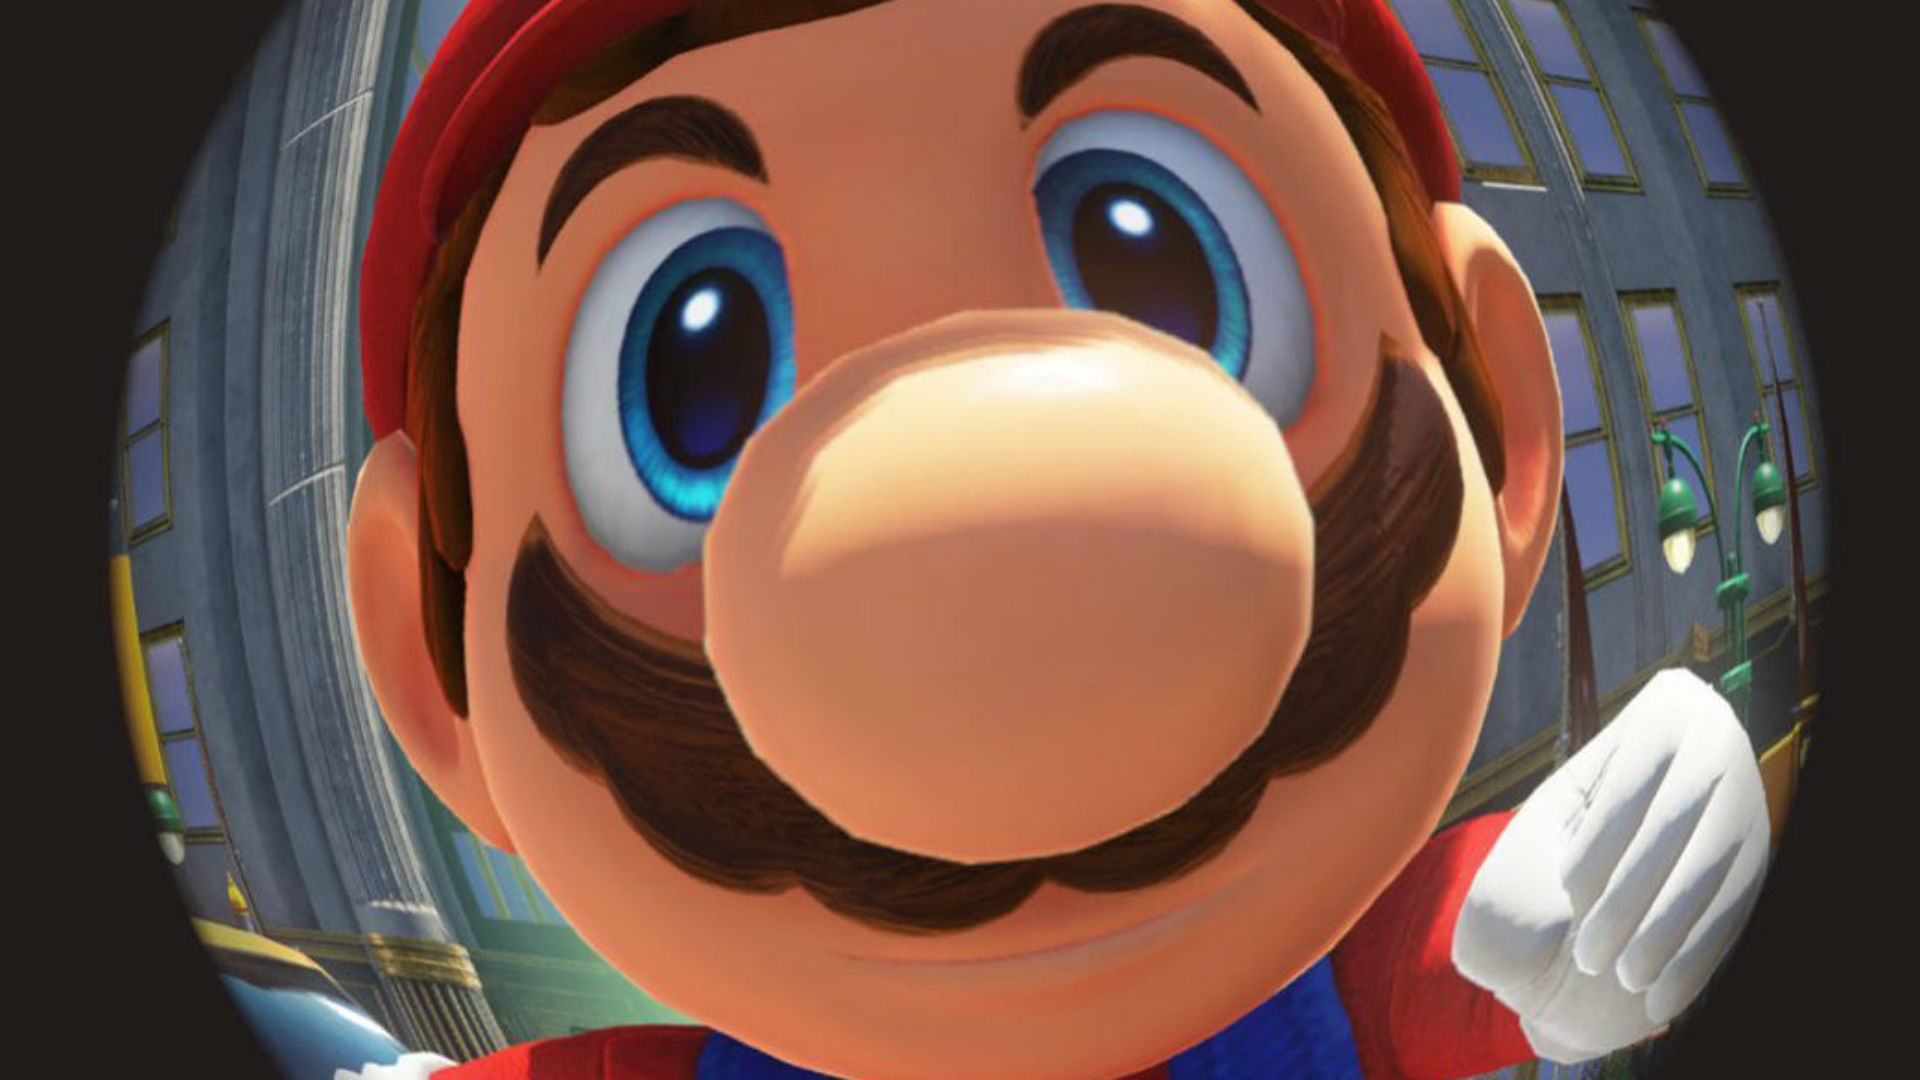 Nintendo is planning more than just the Mario movie from the Minions studio screenshot